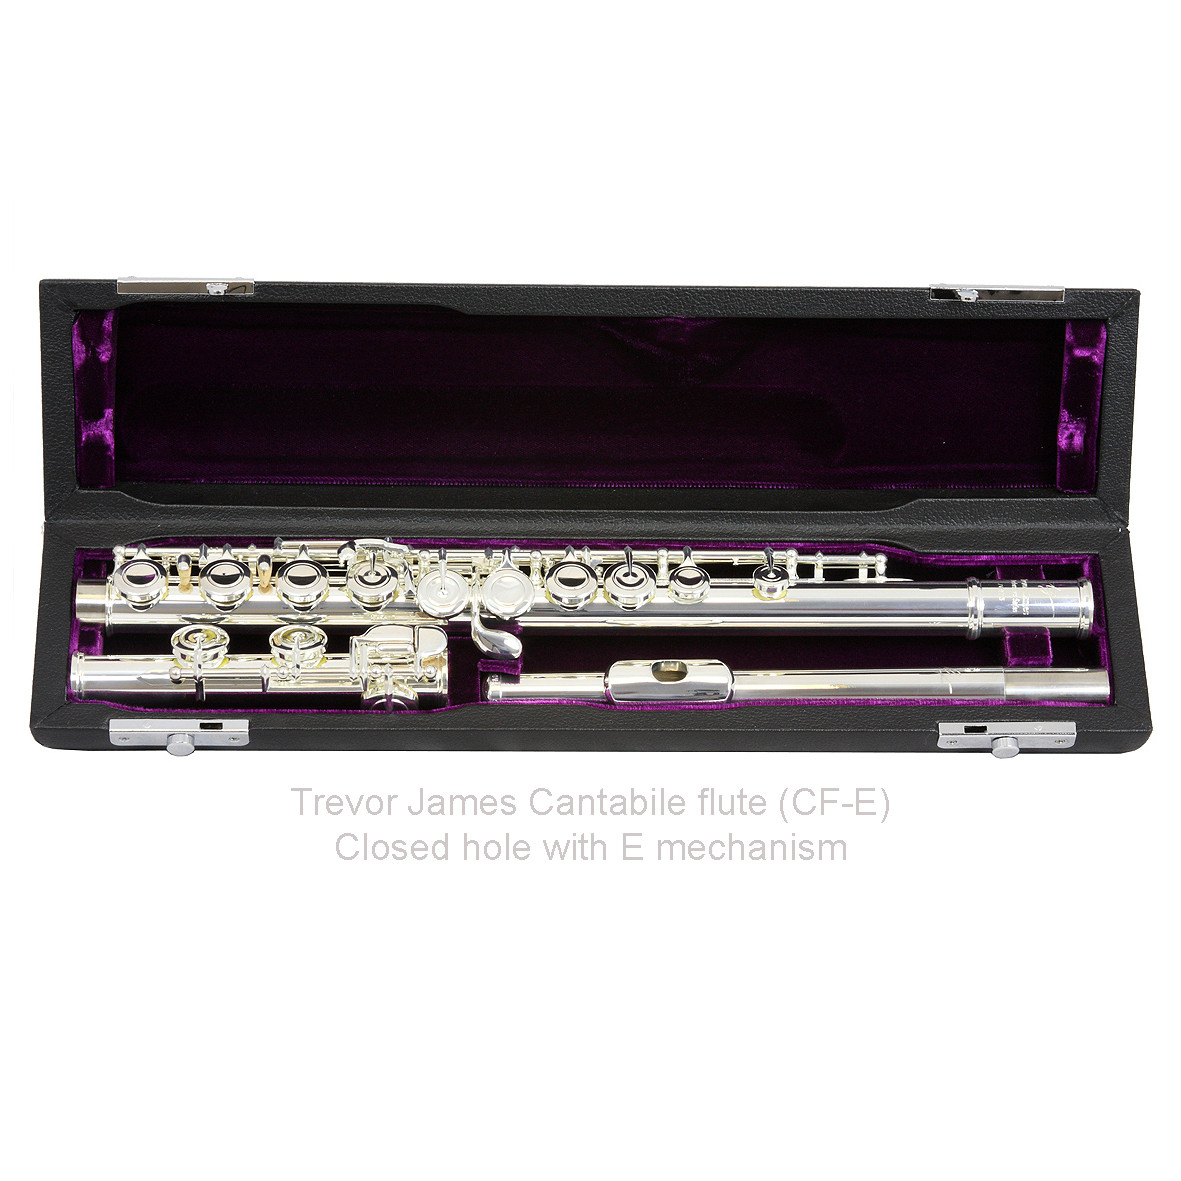 TREVOR JAMES CANTABILE FLUTE IN CASE